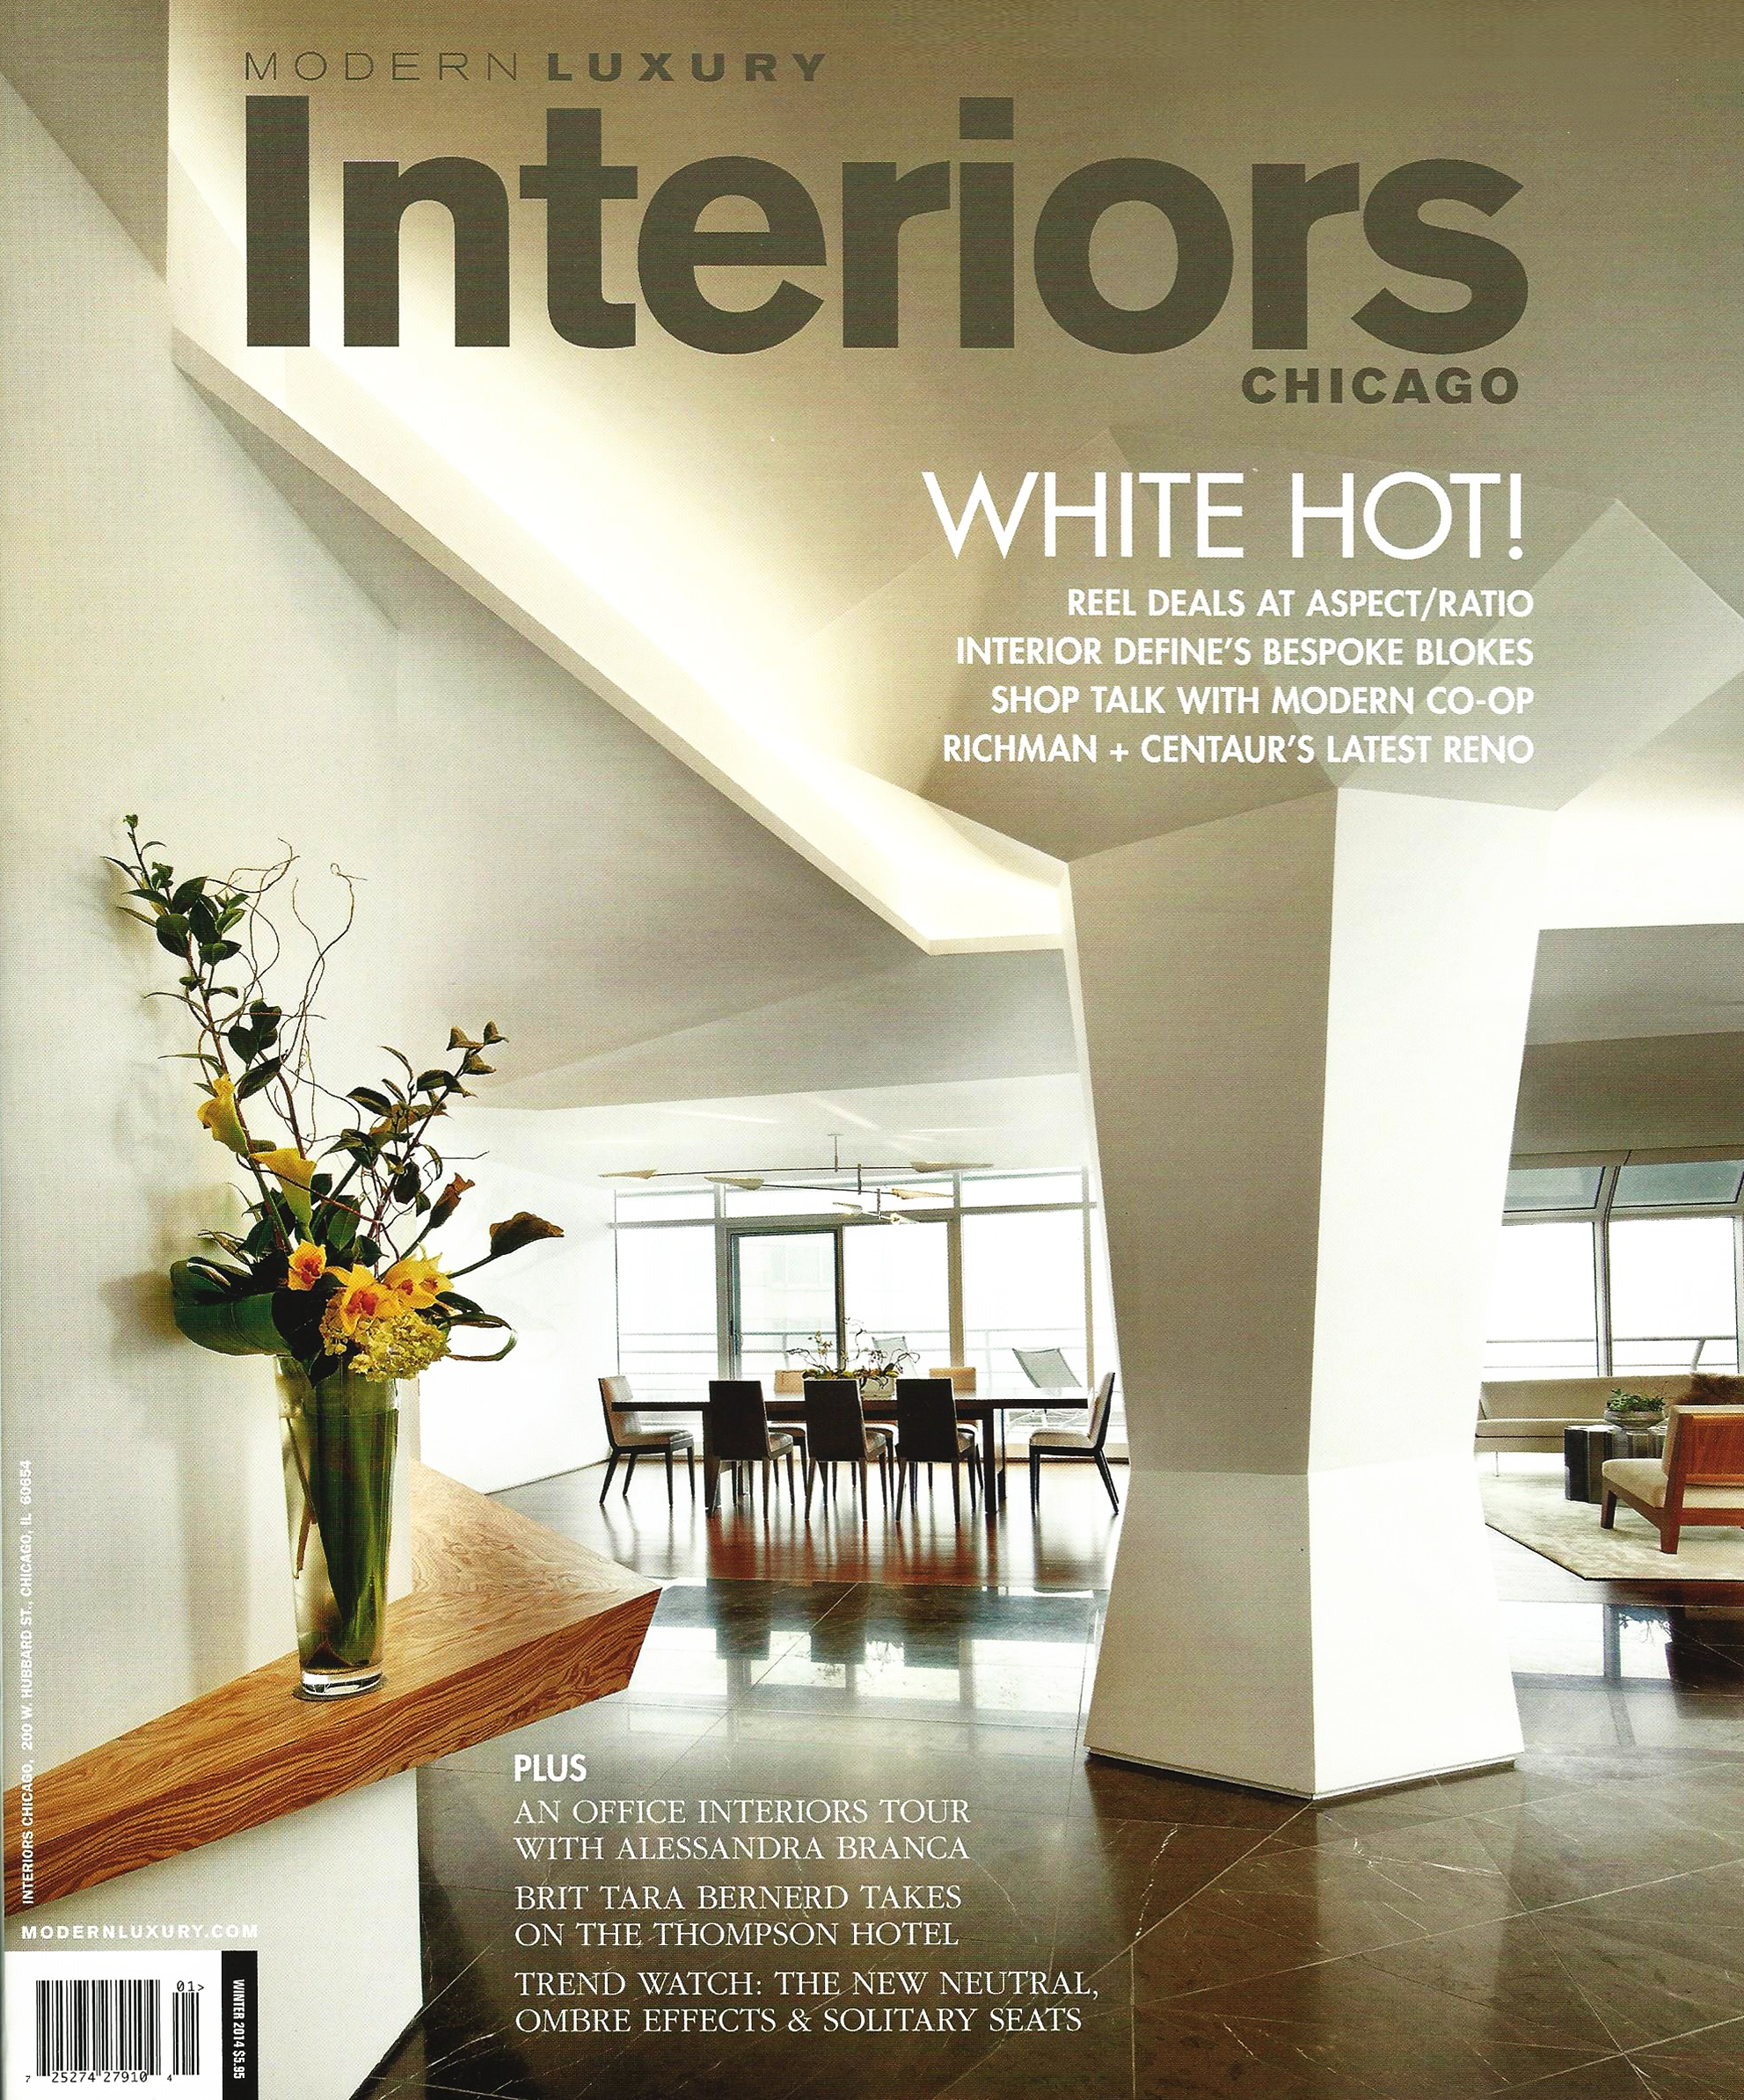 Modern Luxury Interiors Chicago - Winter - pg 58 - Dining by Design Feature - 2014